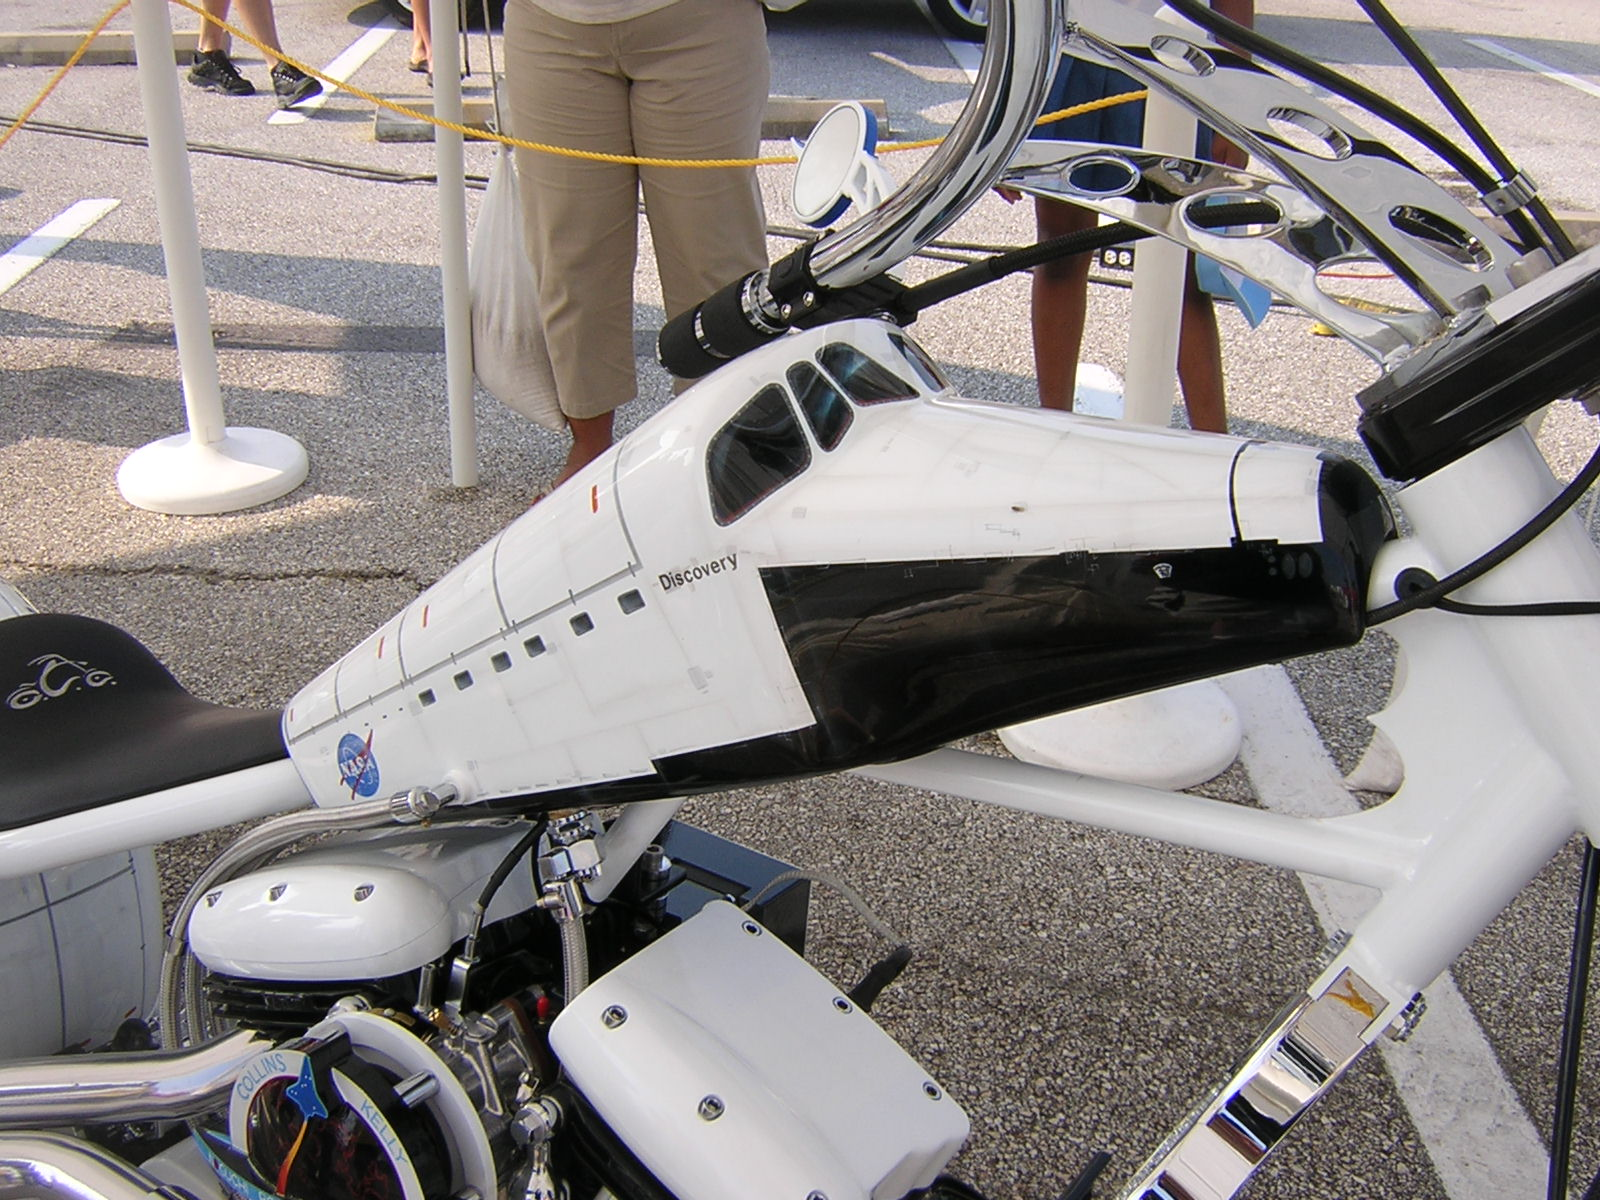 space shuttle bike occ - photo #42